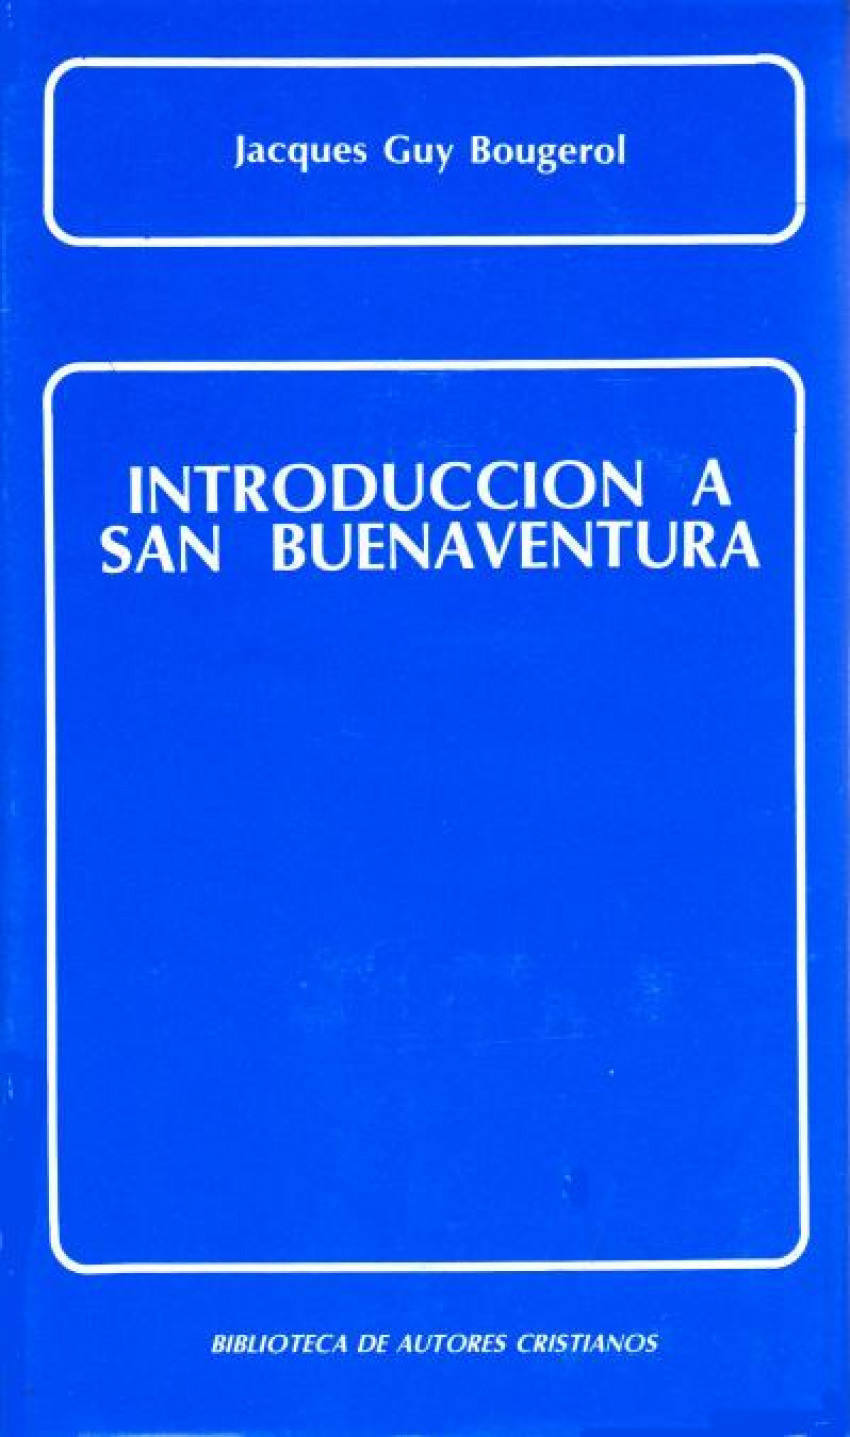 Introducción a San Buenaventura - Bougerol, Jacques Guy